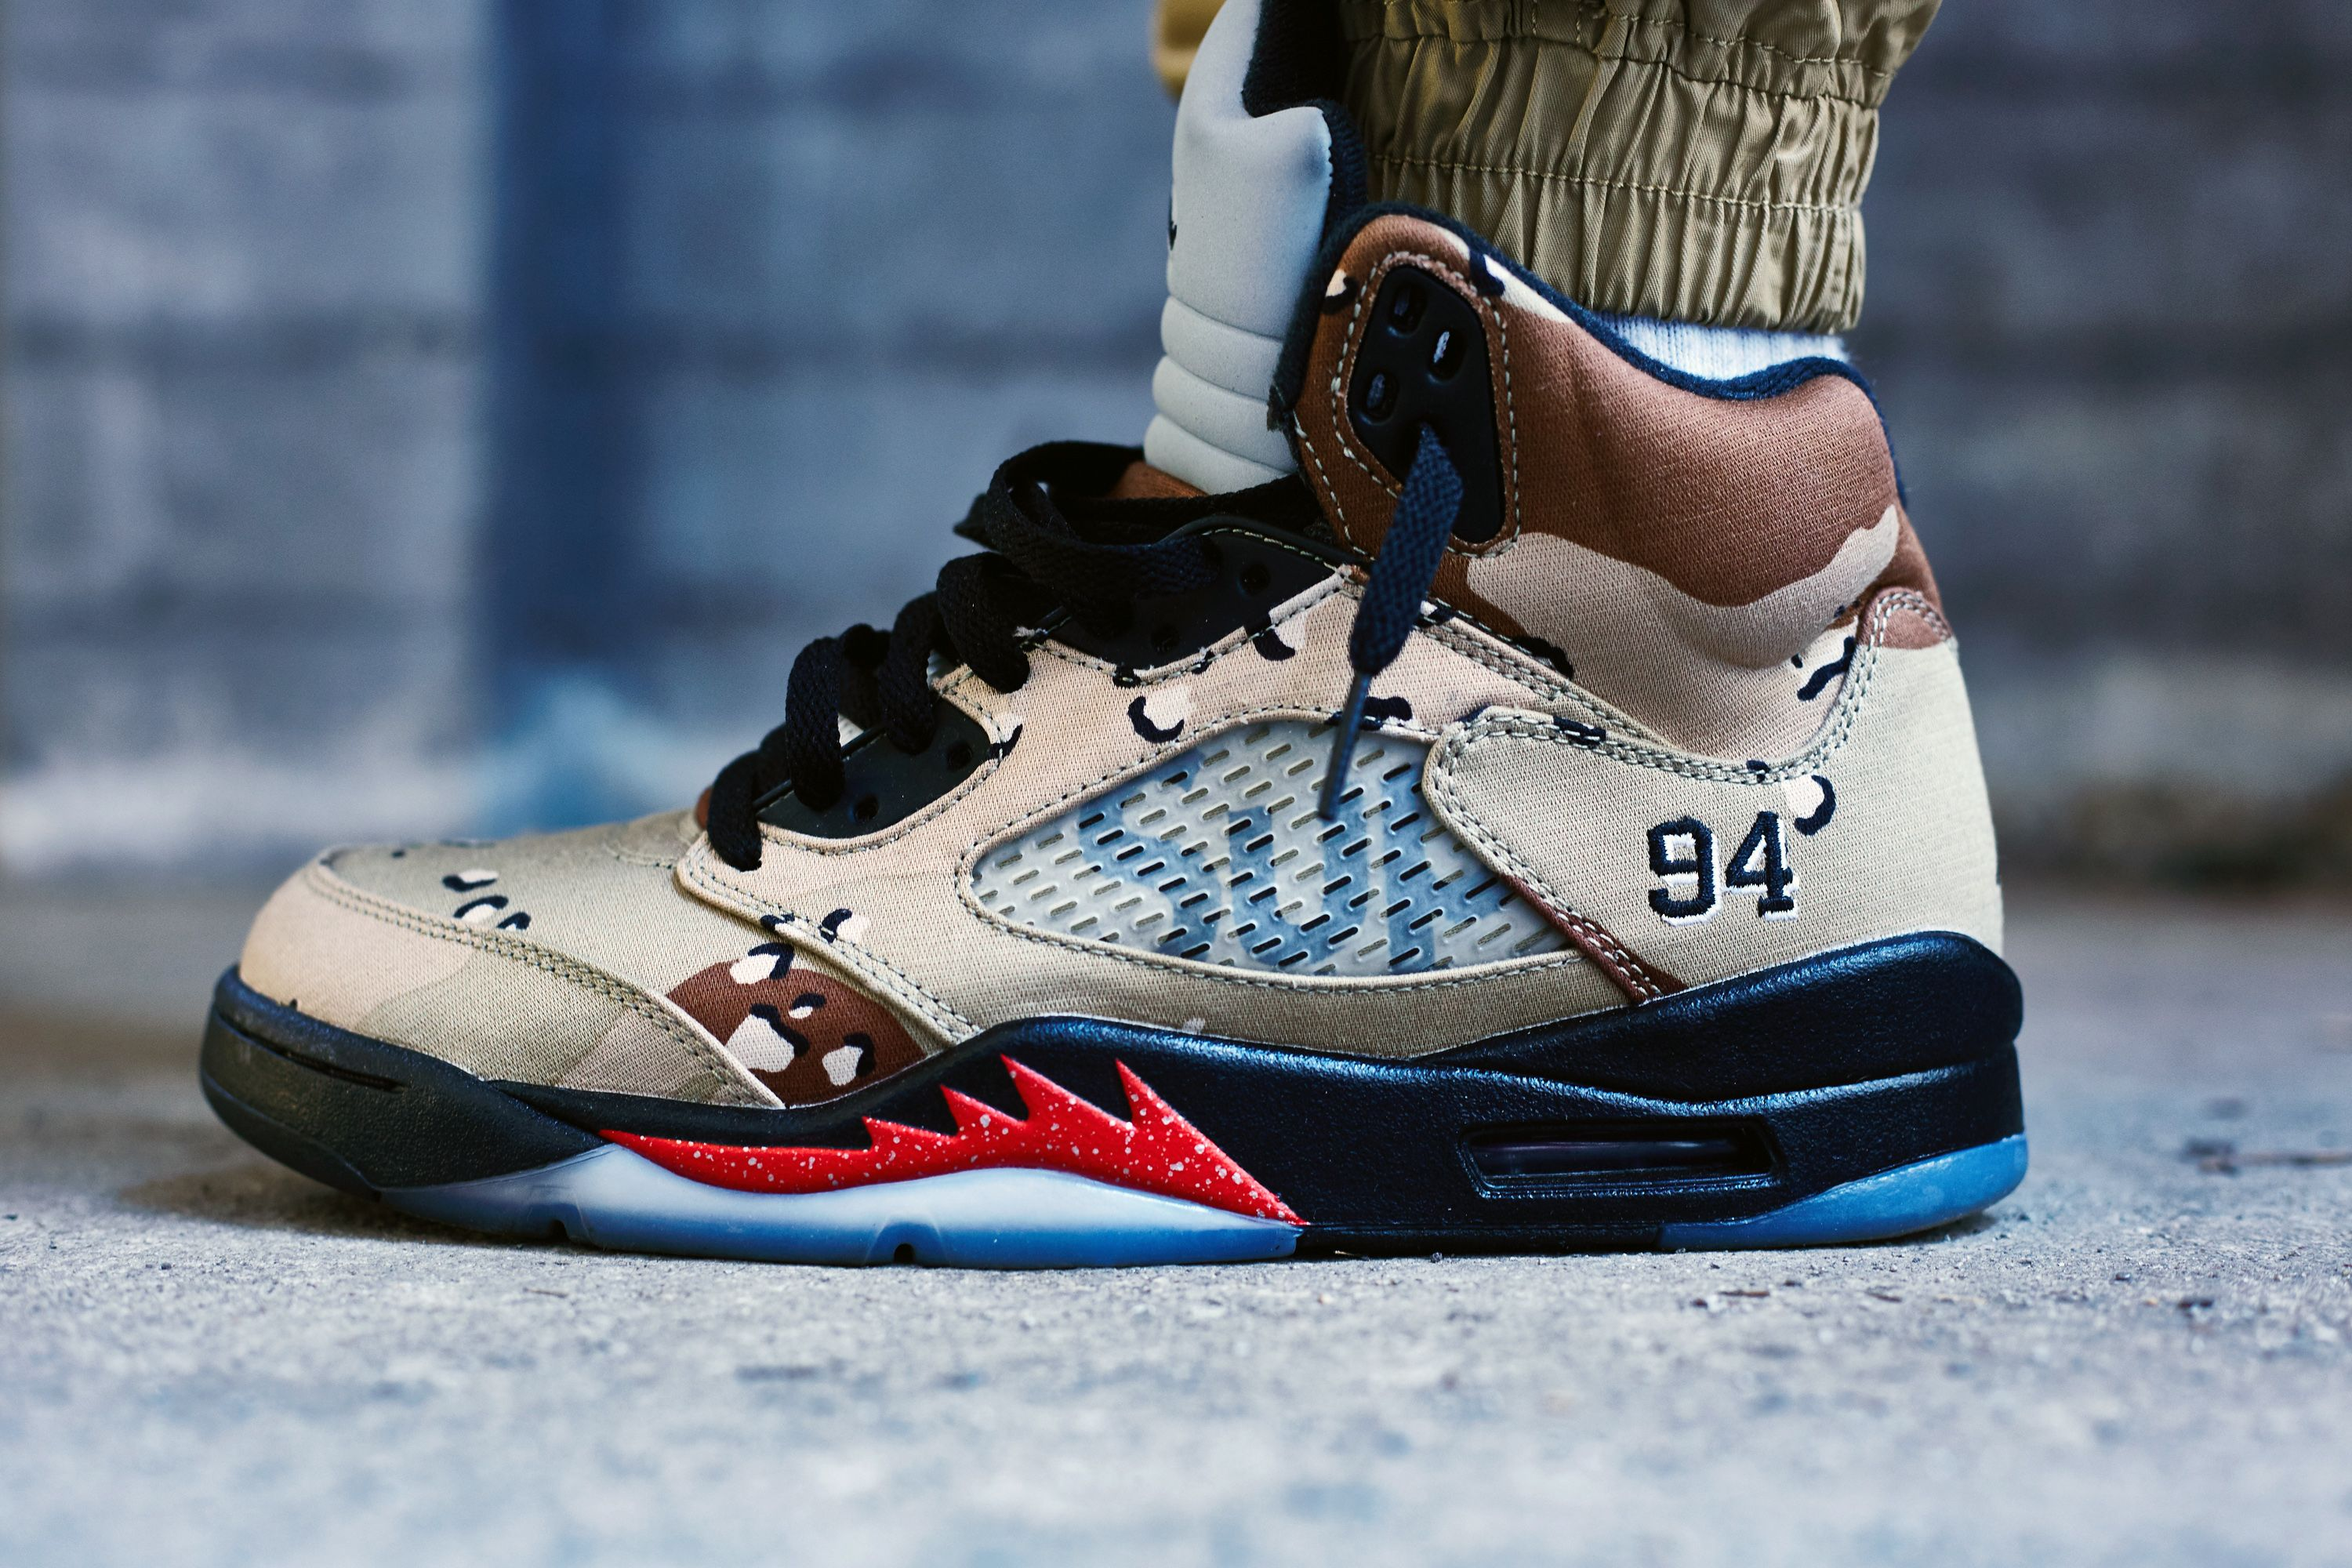 a448ac6971a Supreme x Air Jordan 5 Desert Camo On-Foot Look | The Notorious ...